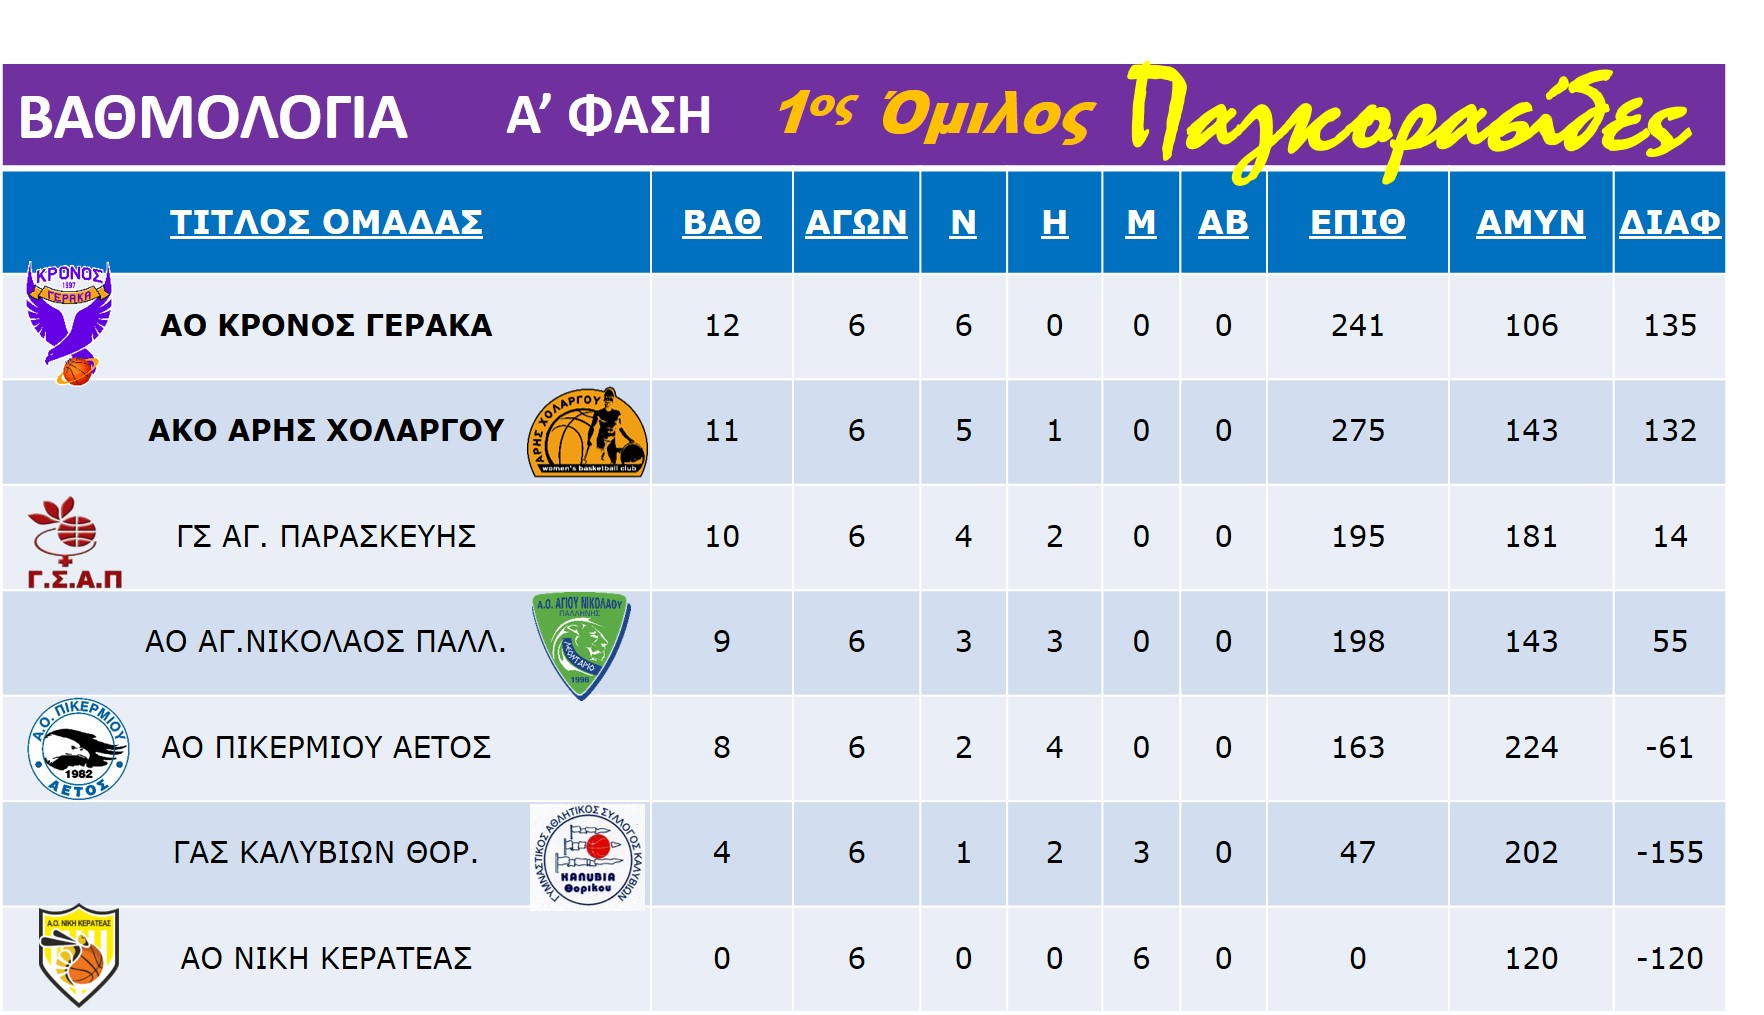 Pagkorasides_Rank_Table_7